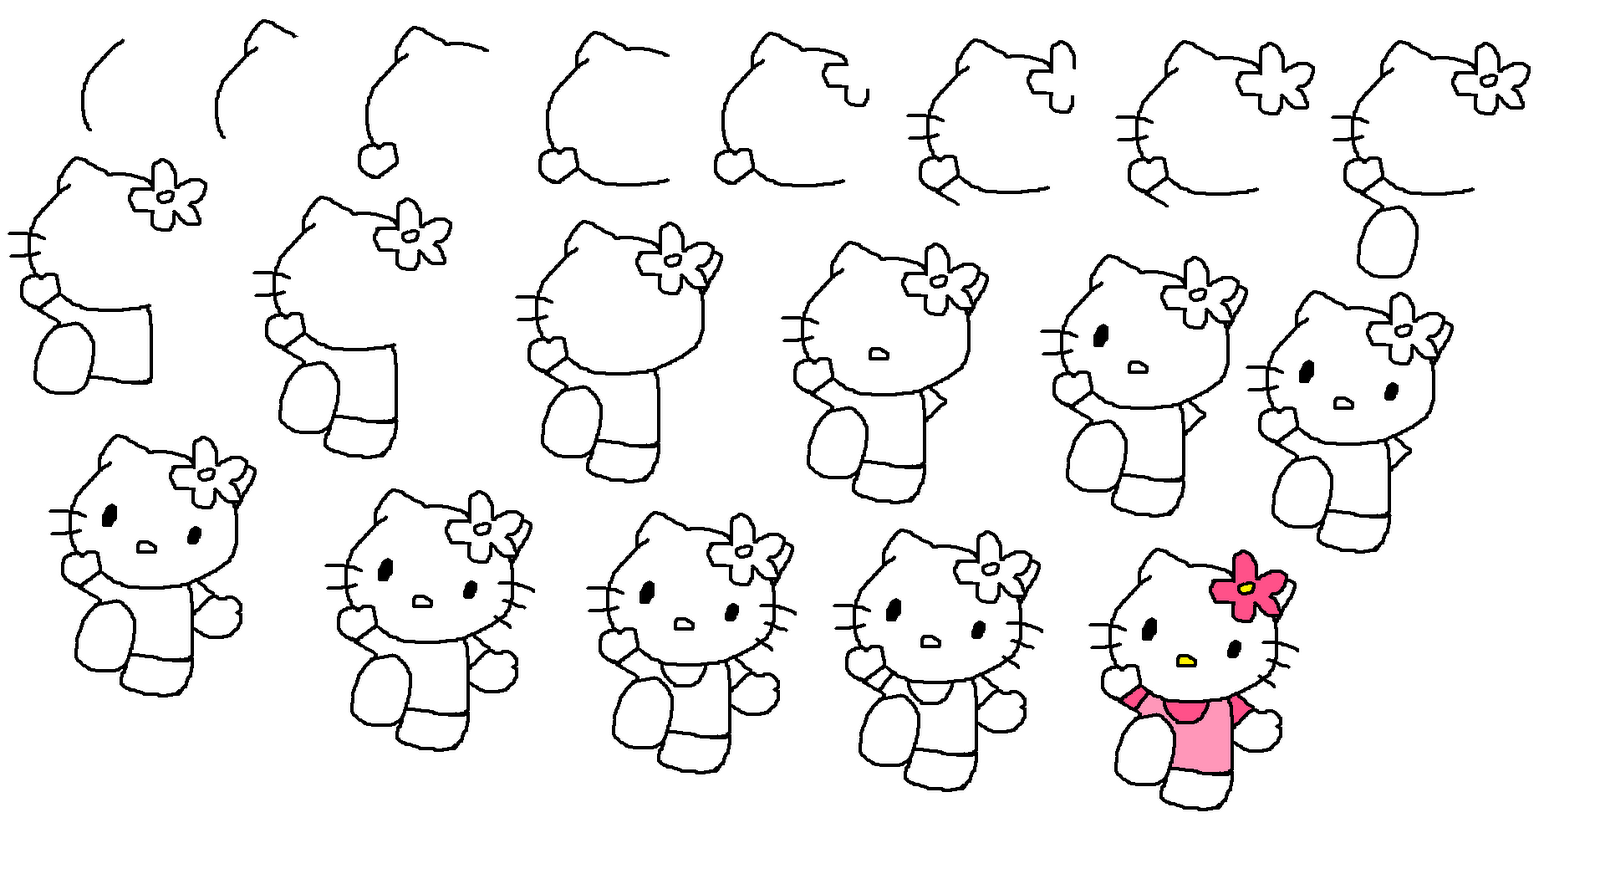 how do you draw hello kitty how to draw hello kitty step by step pictures cool2bkids how you do hello kitty draw